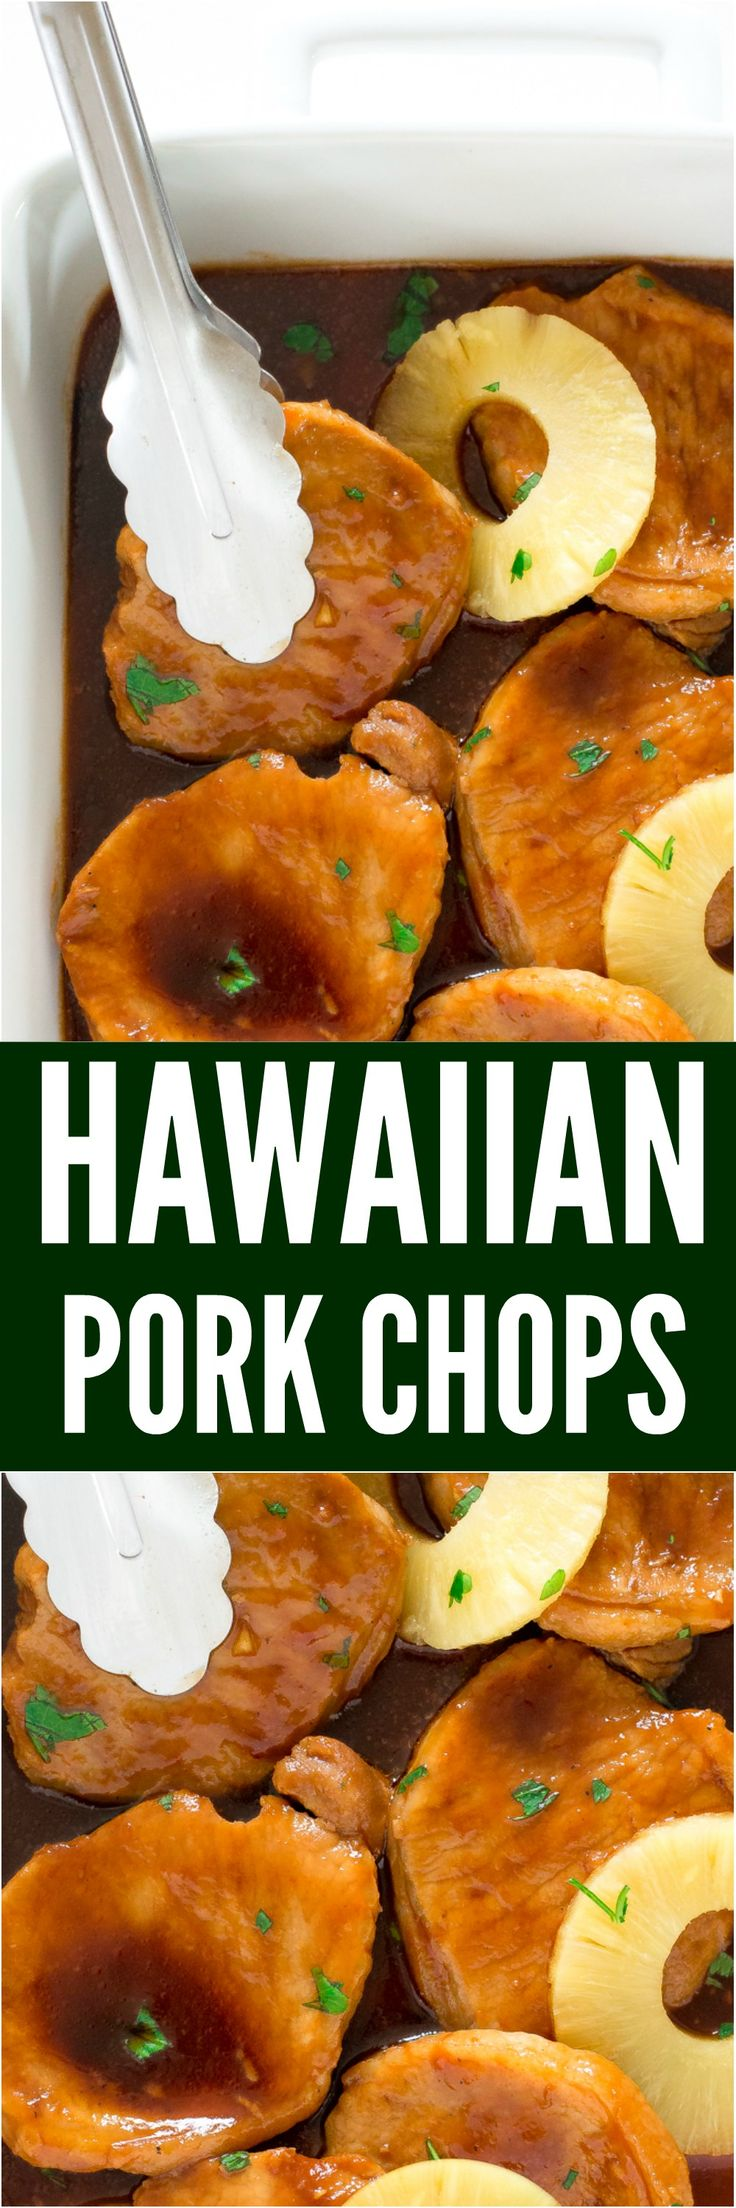 Quick and Easy Hawaiian Pork Chops. Pan fried pork chops simmered in a sweet and tangy Hawaiian sauce. Ready in under 25 minutes!